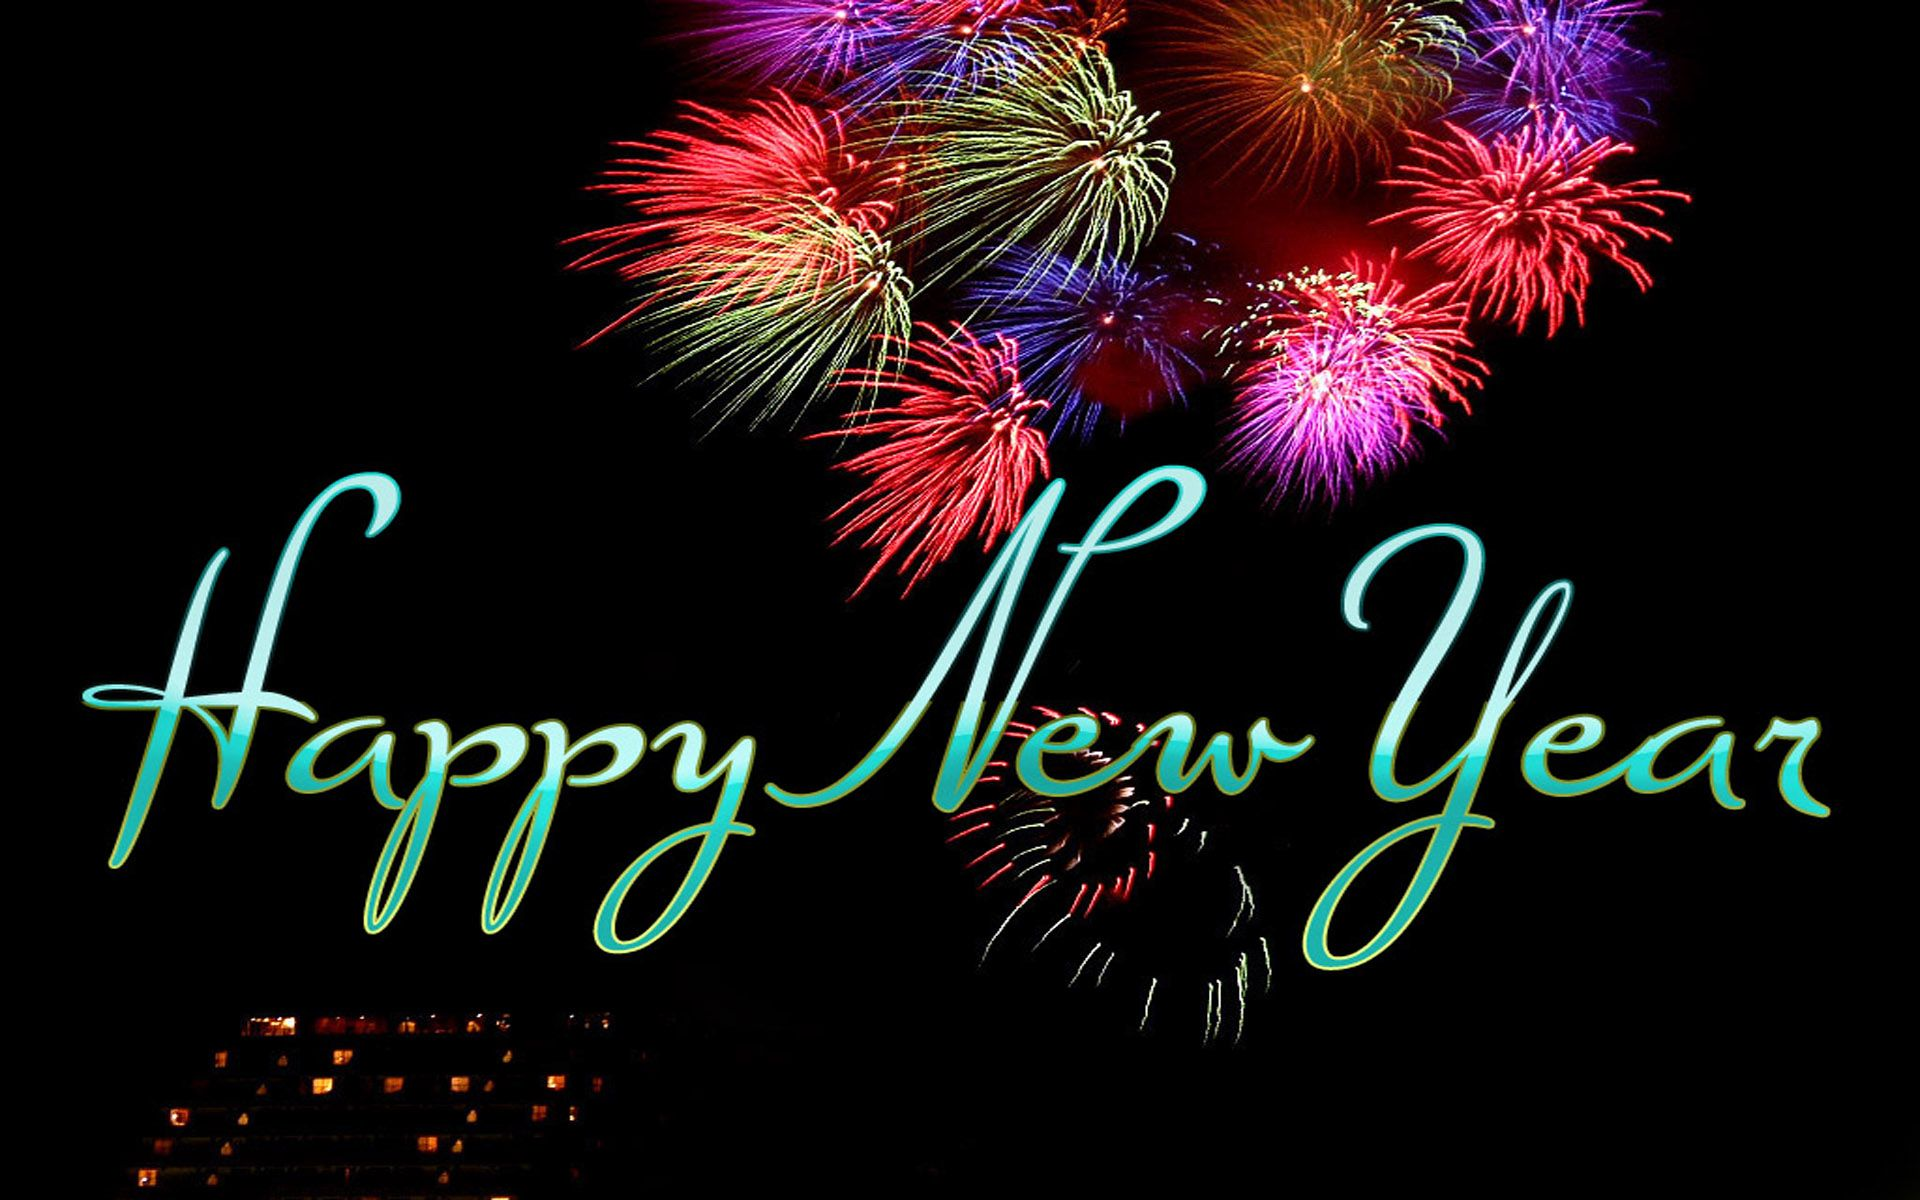 64+] New Years Eve 2015 Wallpaper Free on WallpaperSafari